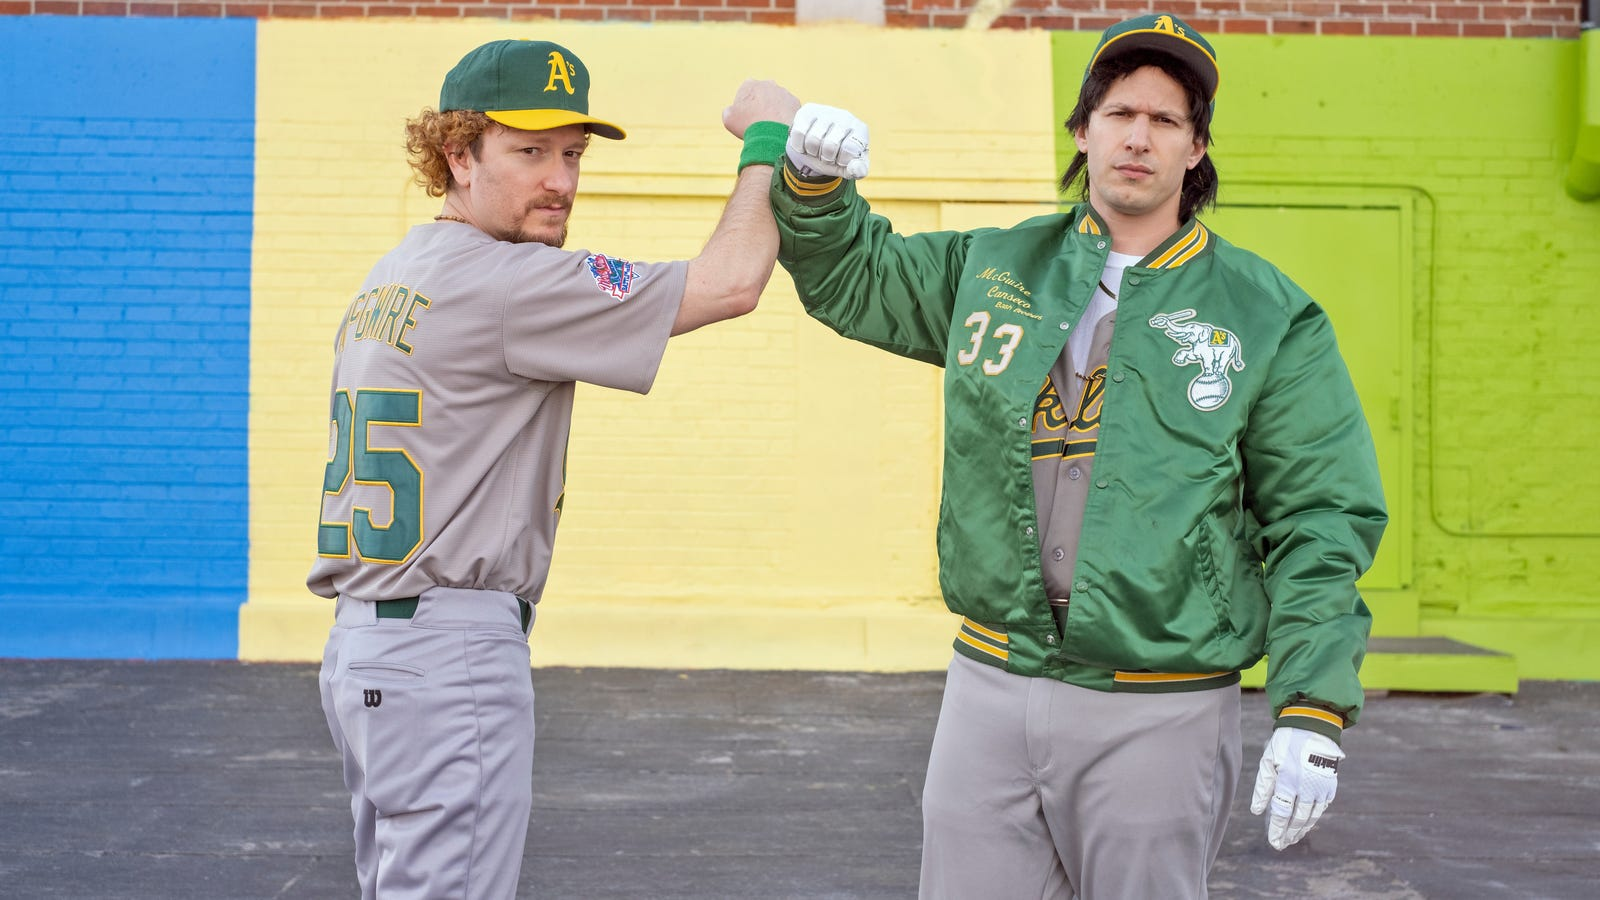 The Lonely Island's Bash Brothers deliver major-league audacity in a minor-league package - The A.V. Club